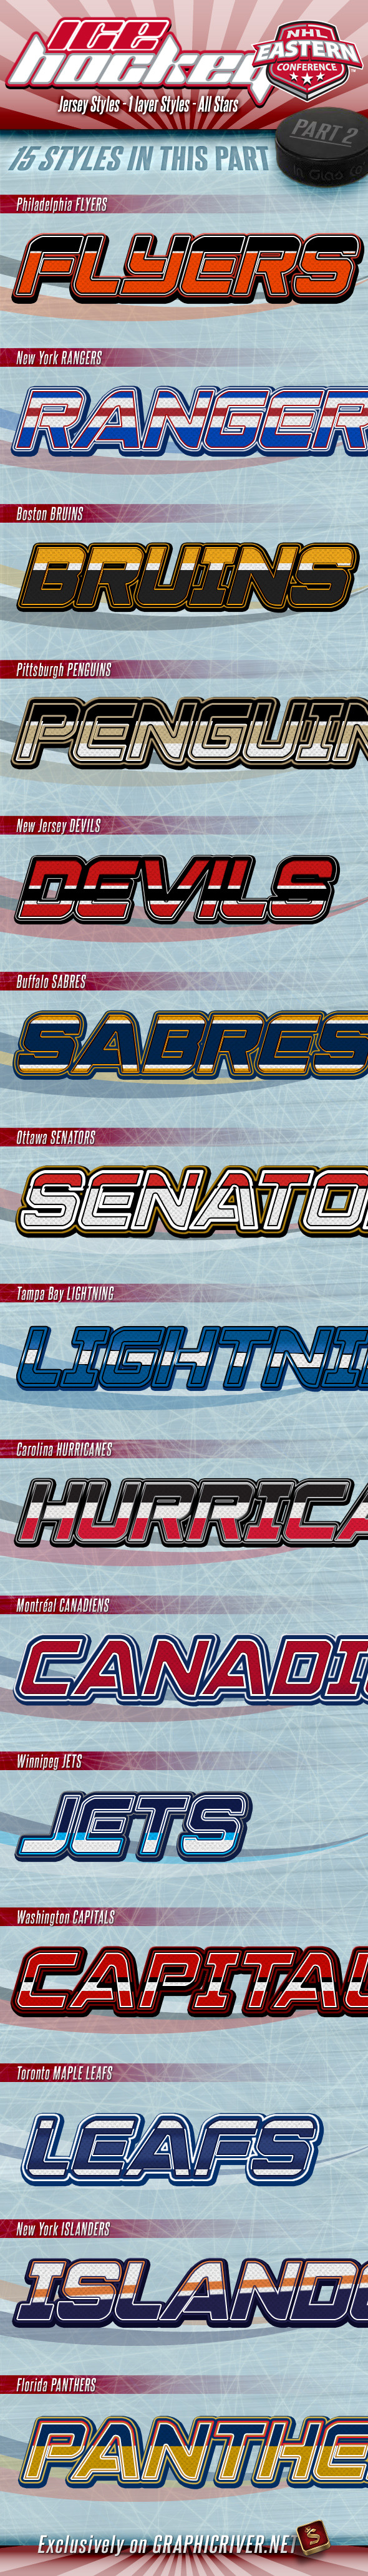 NHL Hockey Jersey Styles - Part 2 - Text Effects Styles